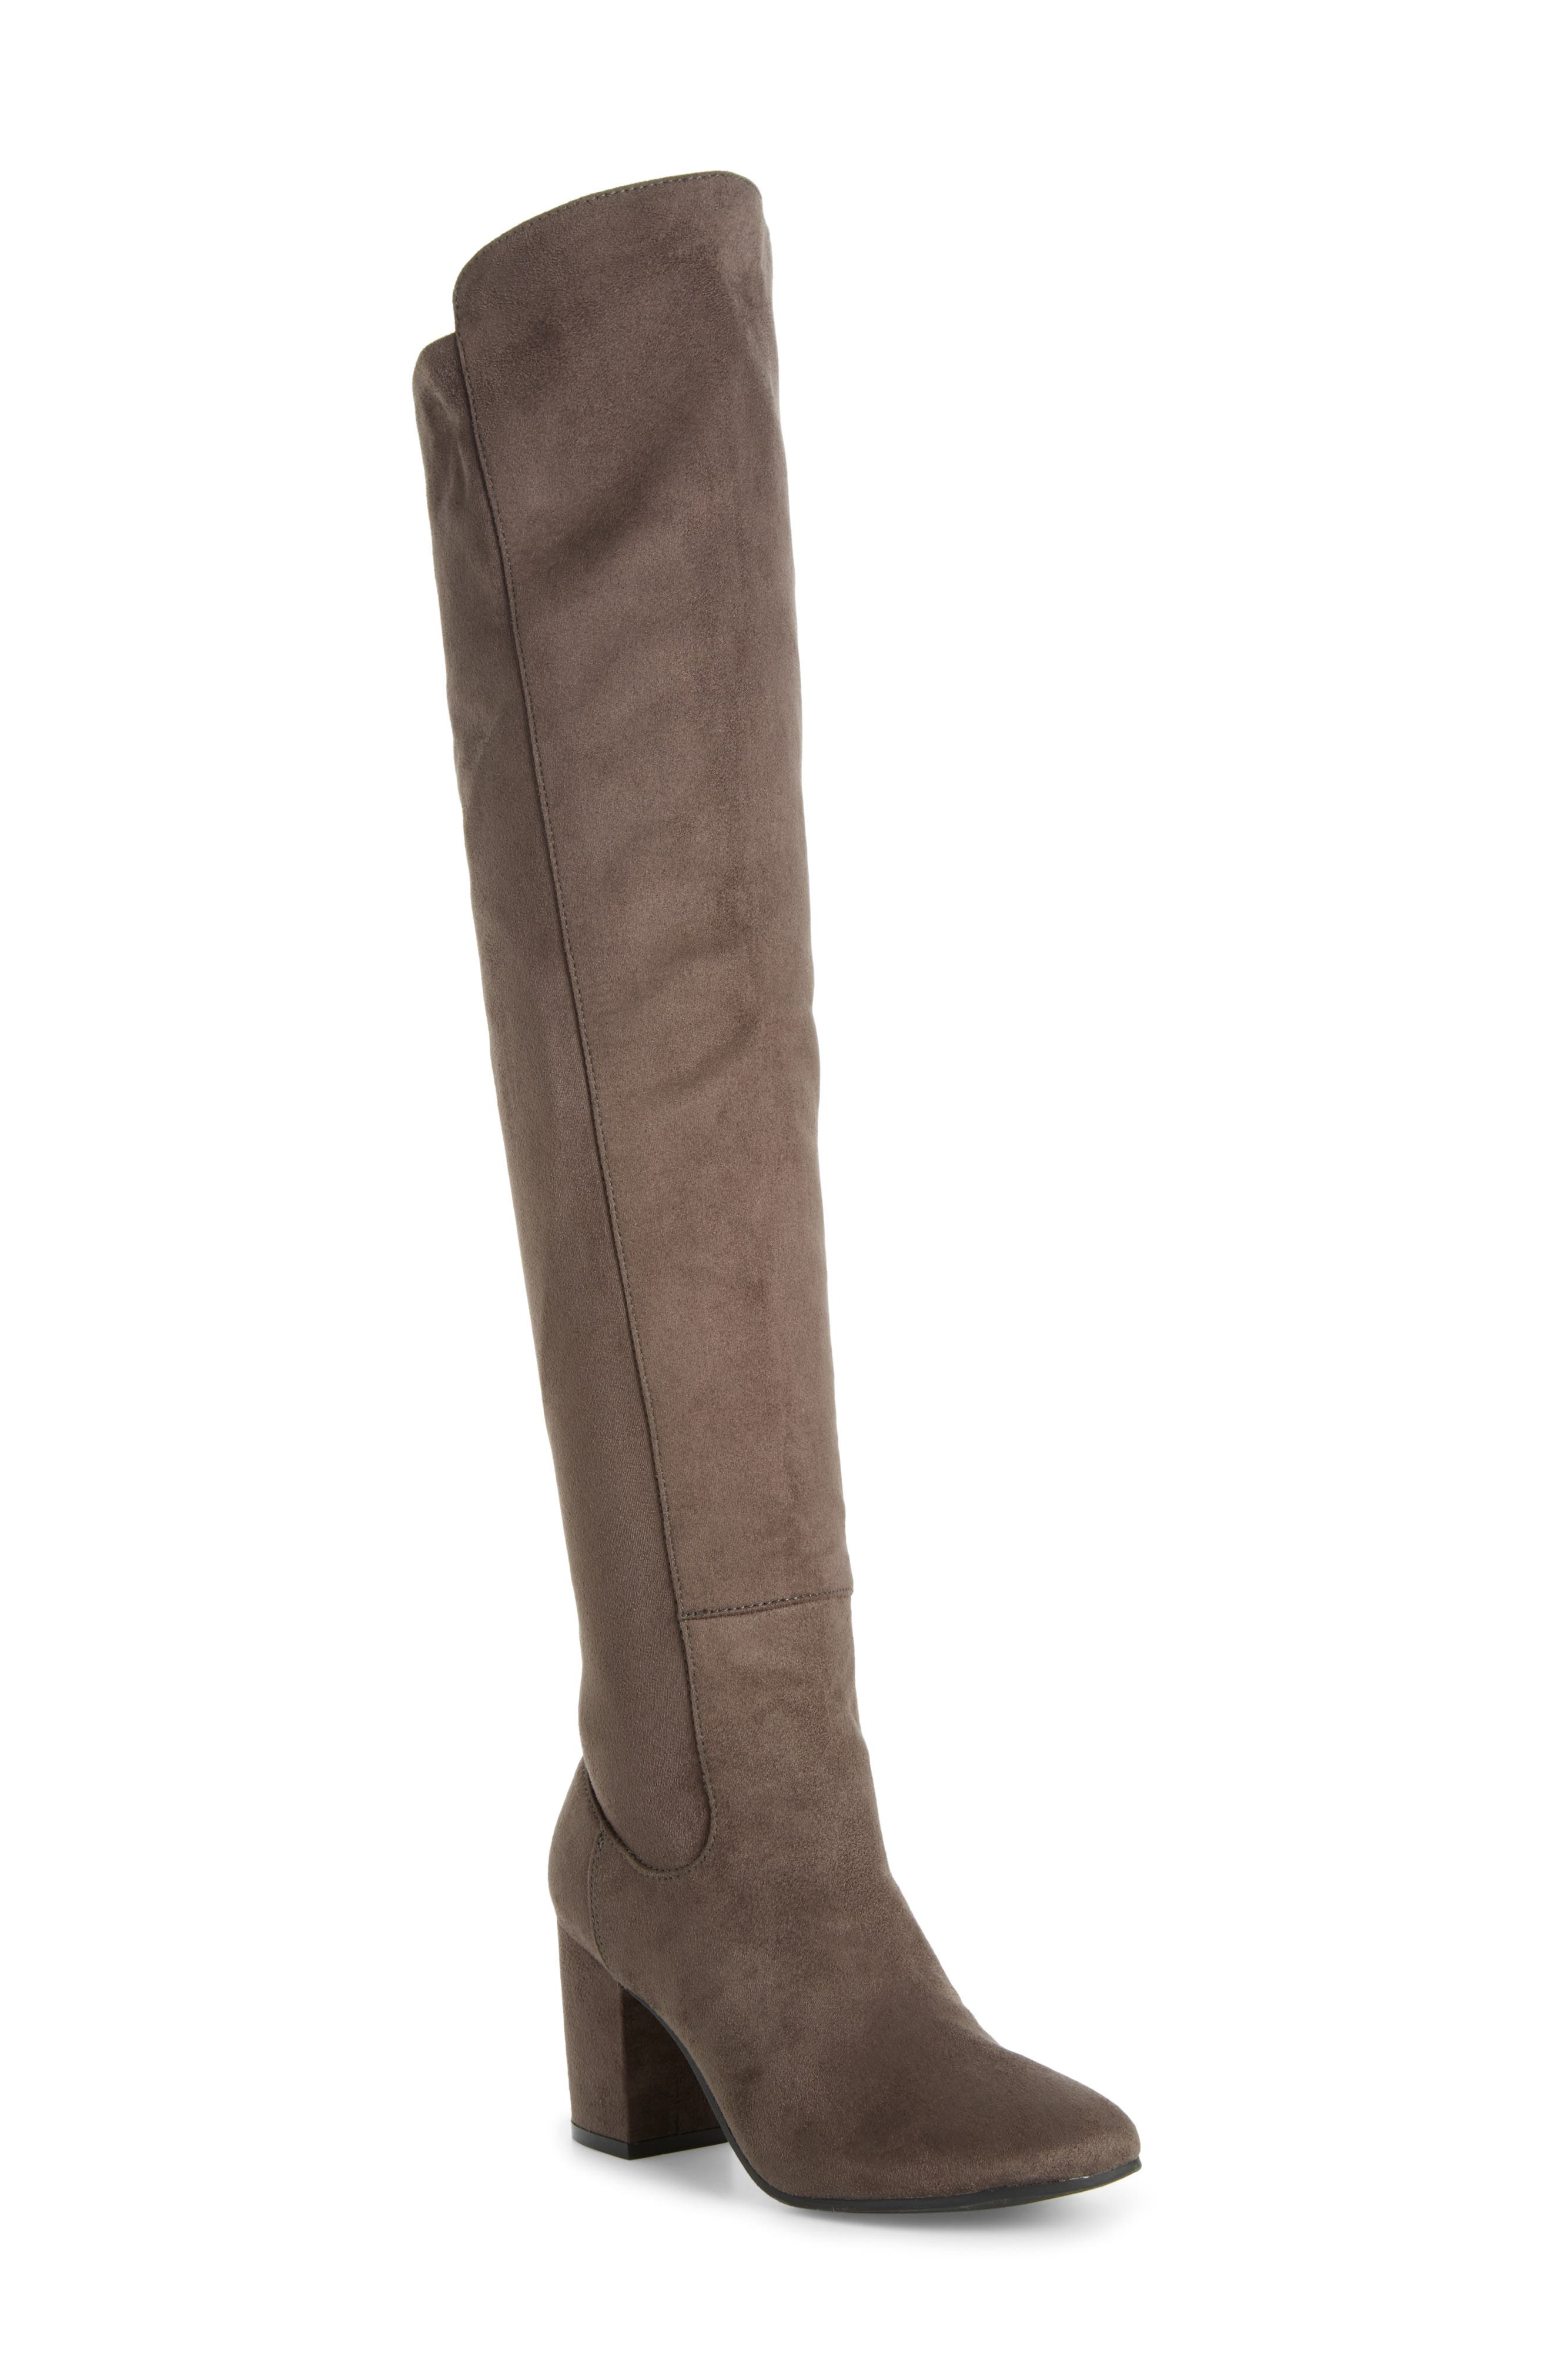 Lynx Stretch Over the Knee Boot,                             Main thumbnail 1, color,                             Charcoal Faux Suede